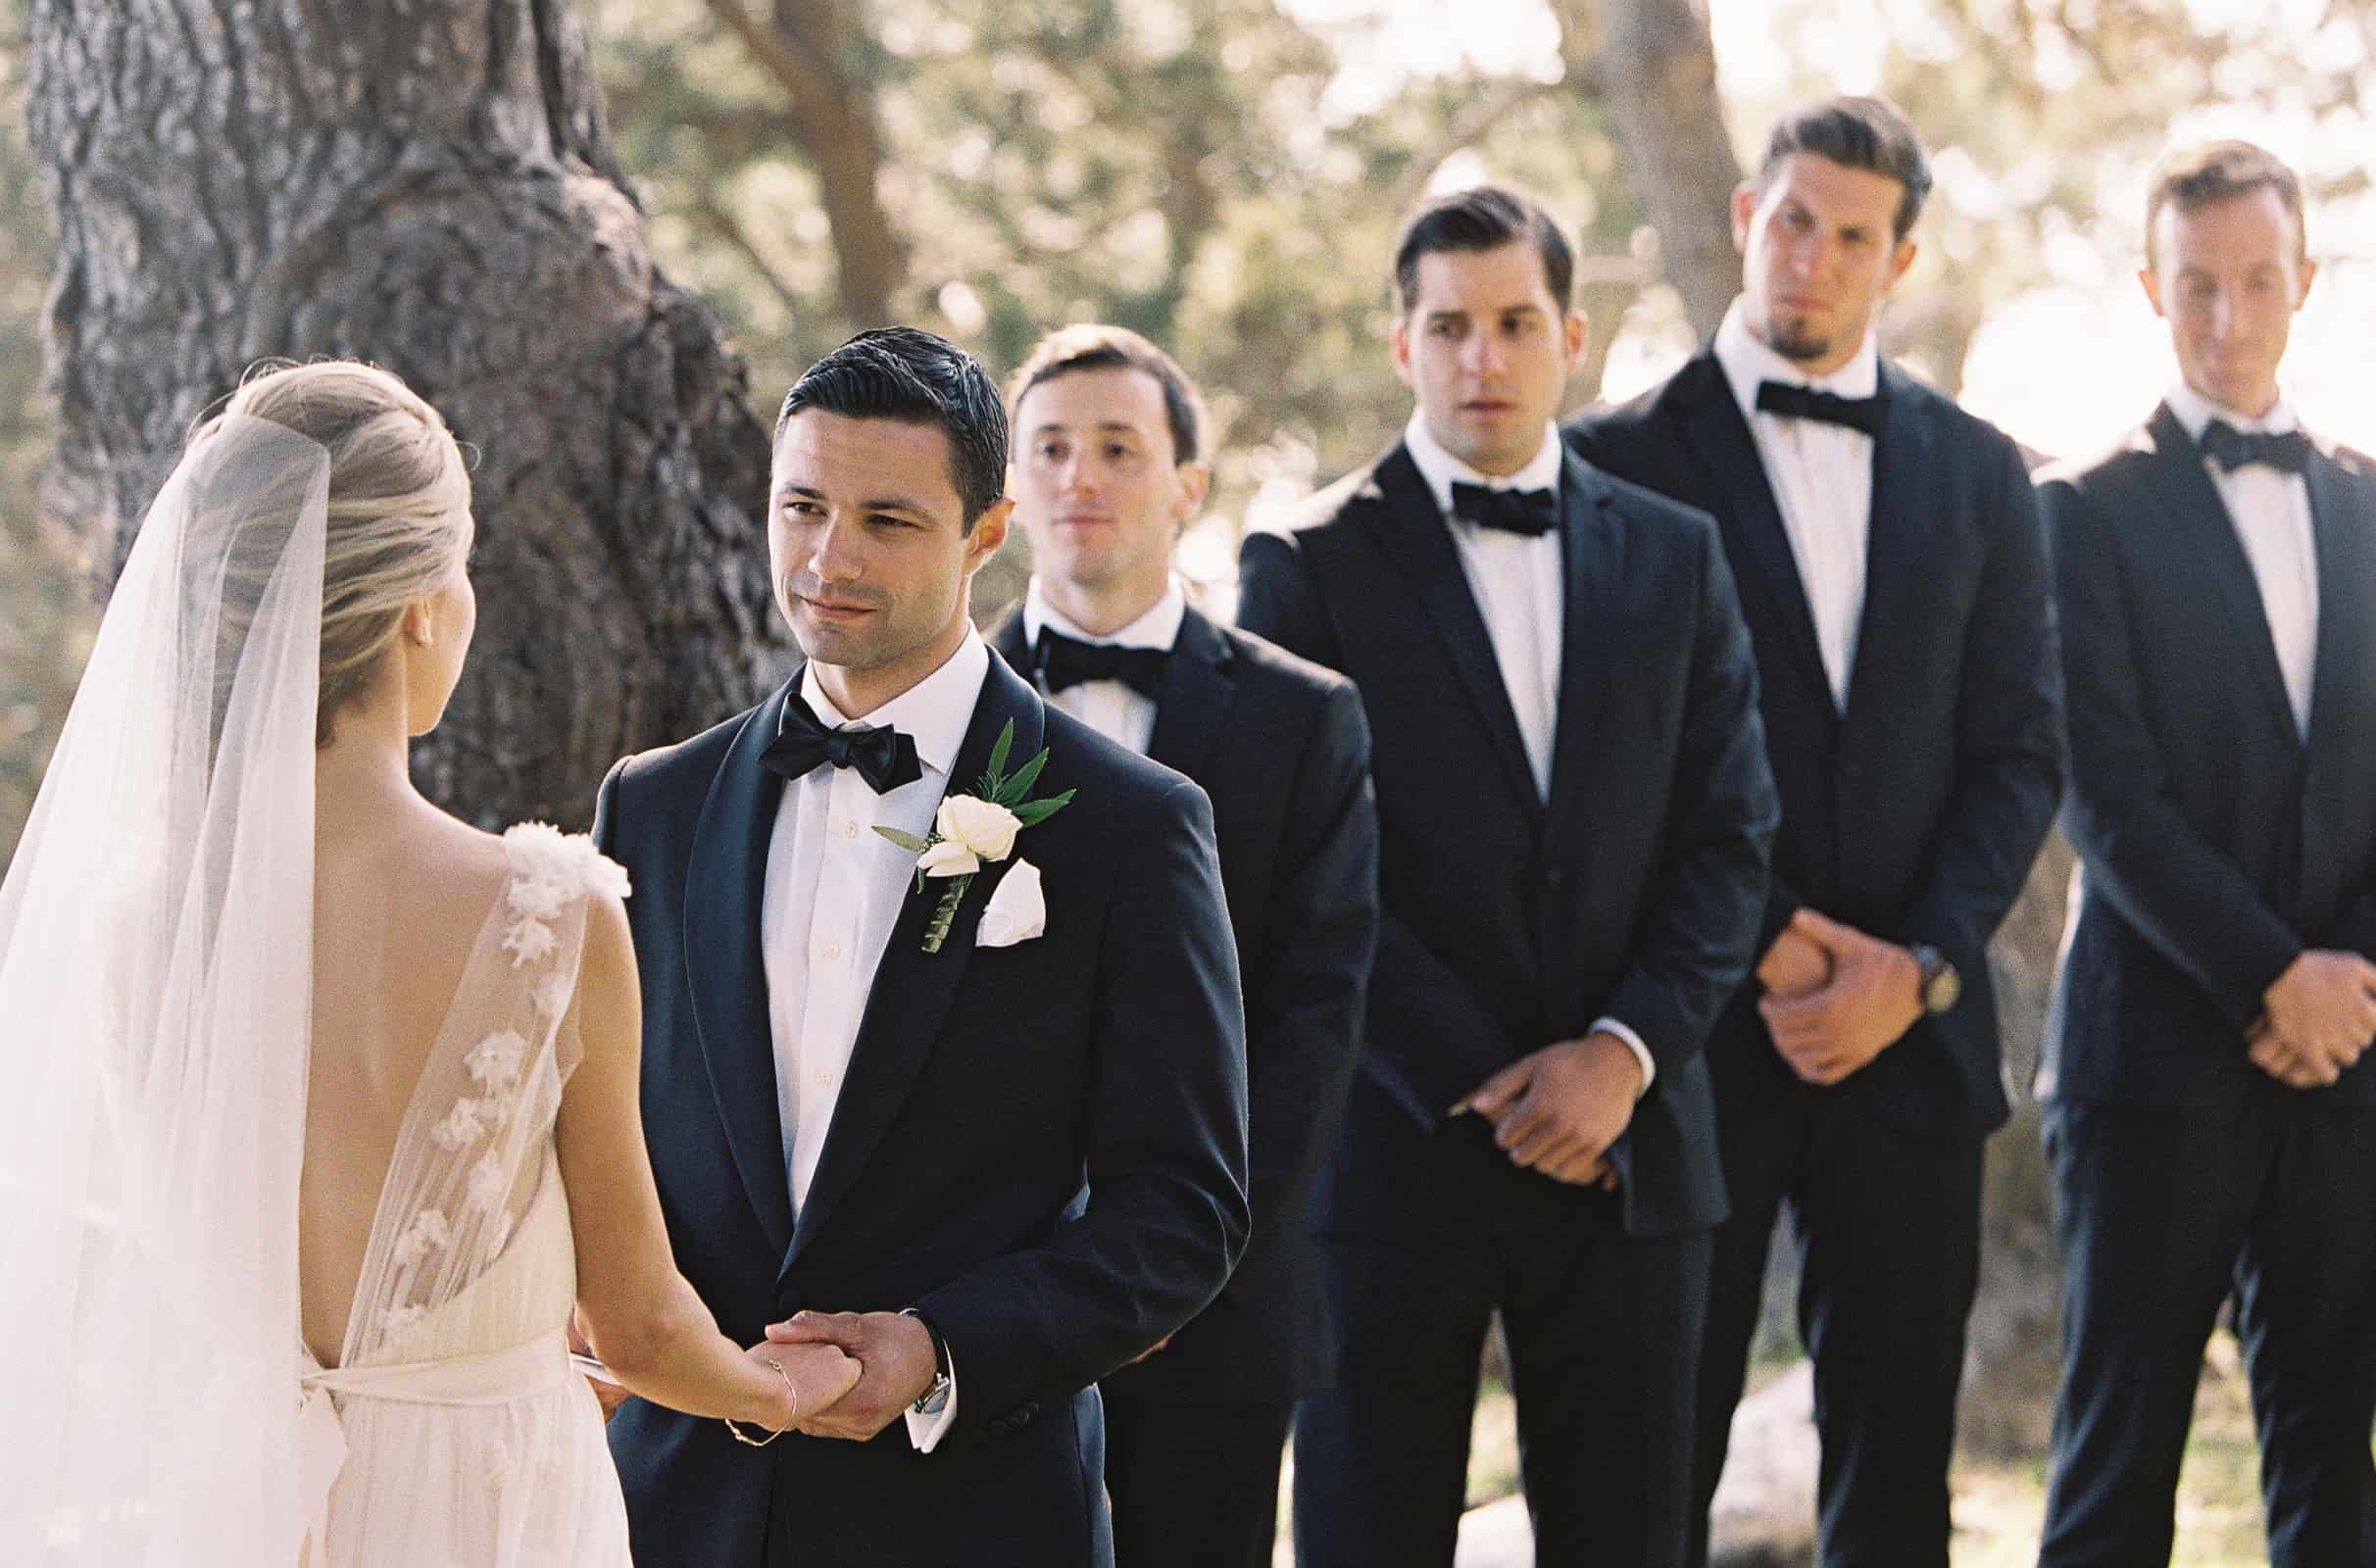 groom looking at bride during the ceremony with black tie groomsmen in background